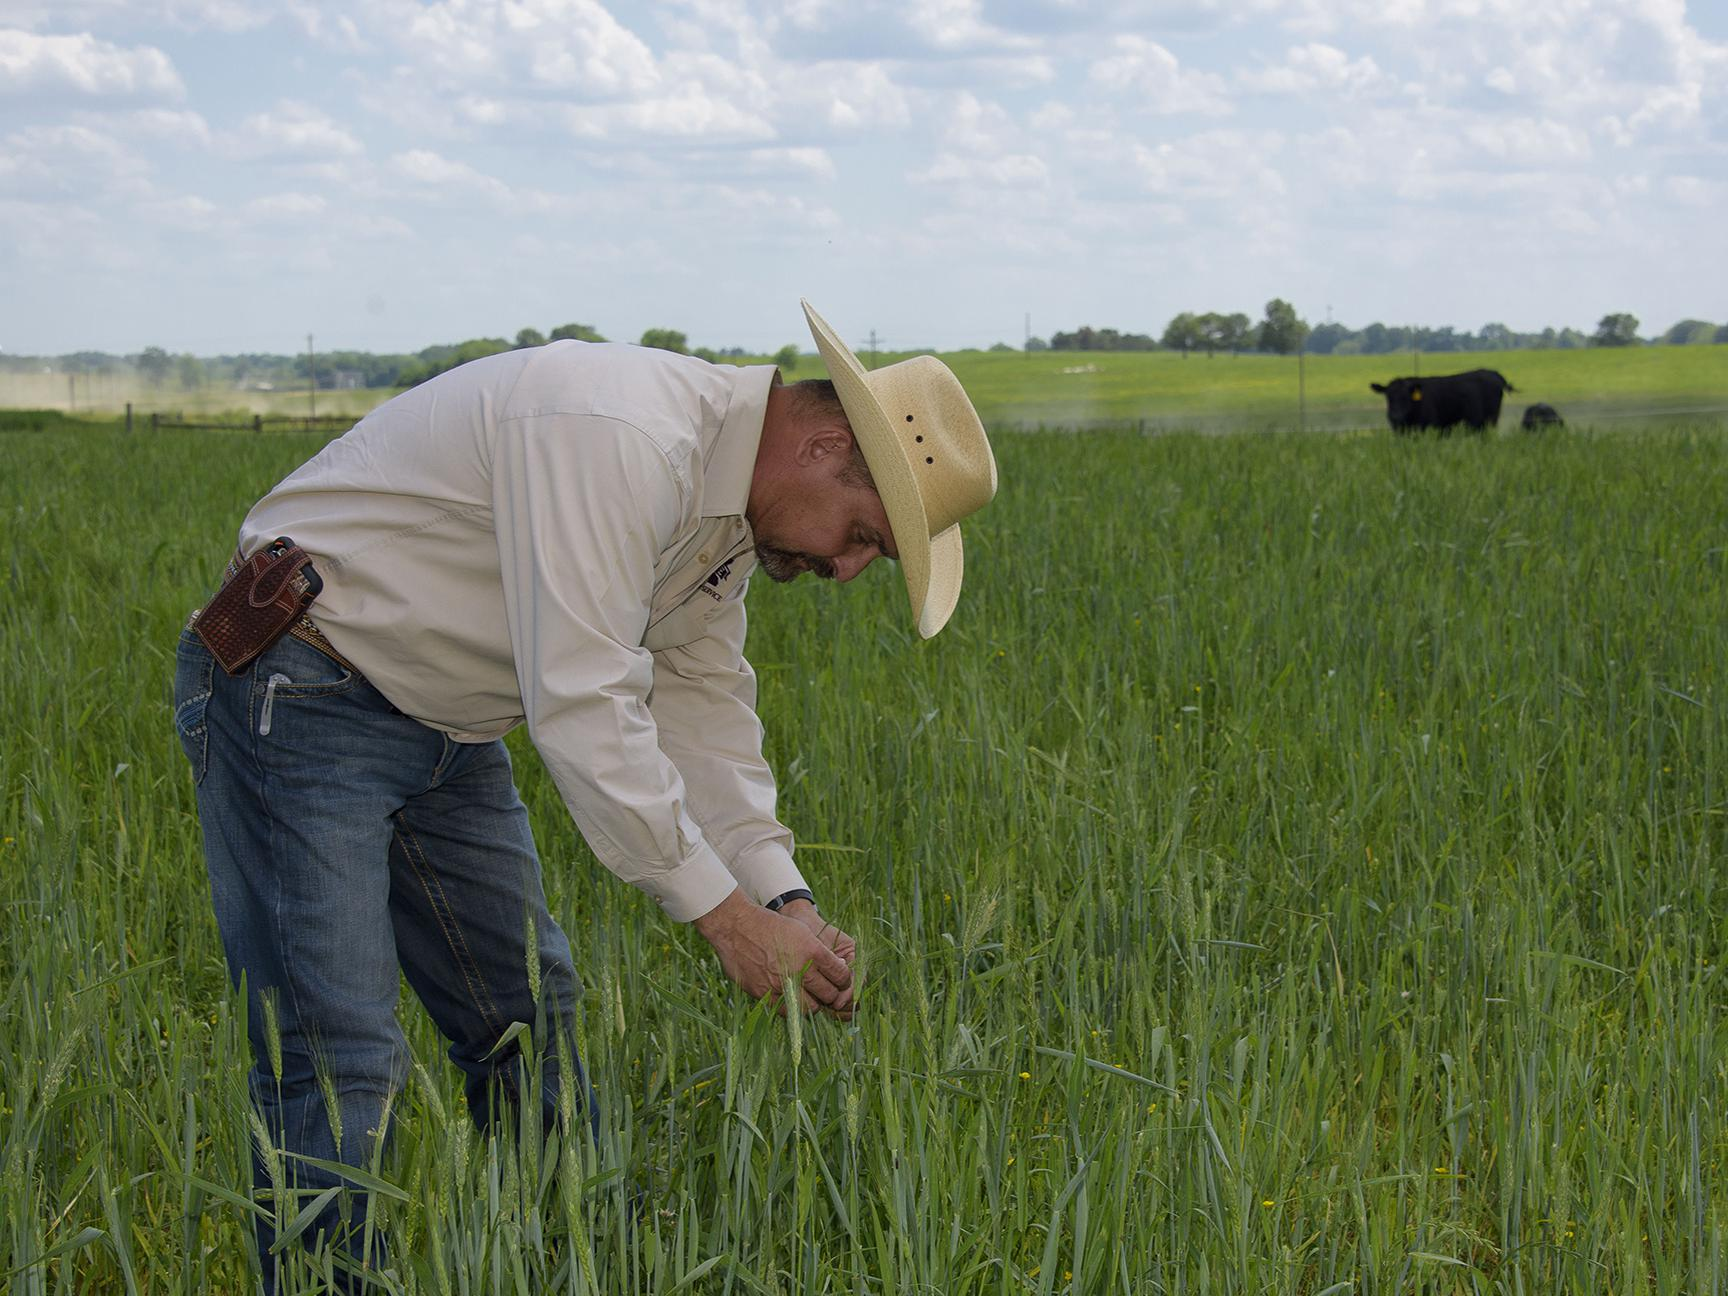 Mississippi State University Extension Service forage specialist Rocky Lemus inspects wheat interseeded with balansa clover at the H.H. Leveck Animal Research Center in Starkville, Mississippi, on April 20, 2017. (Photo by MSU Extension Service/Kevin Hudson)